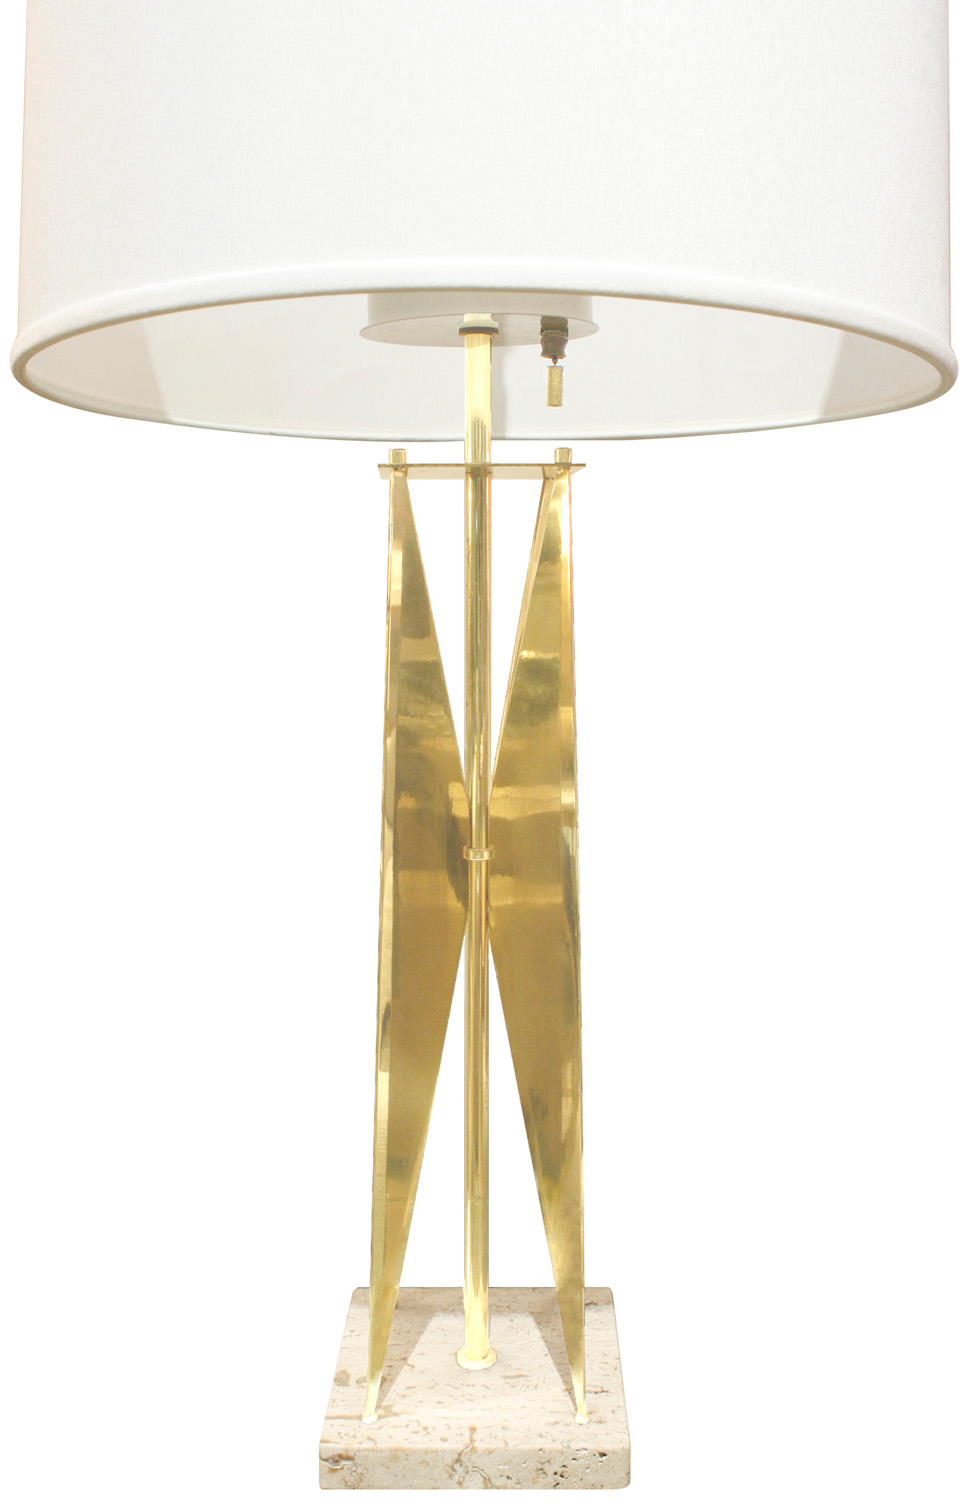 Thurston brass fins tav base tablelamp238 hires bottom detail.jpg